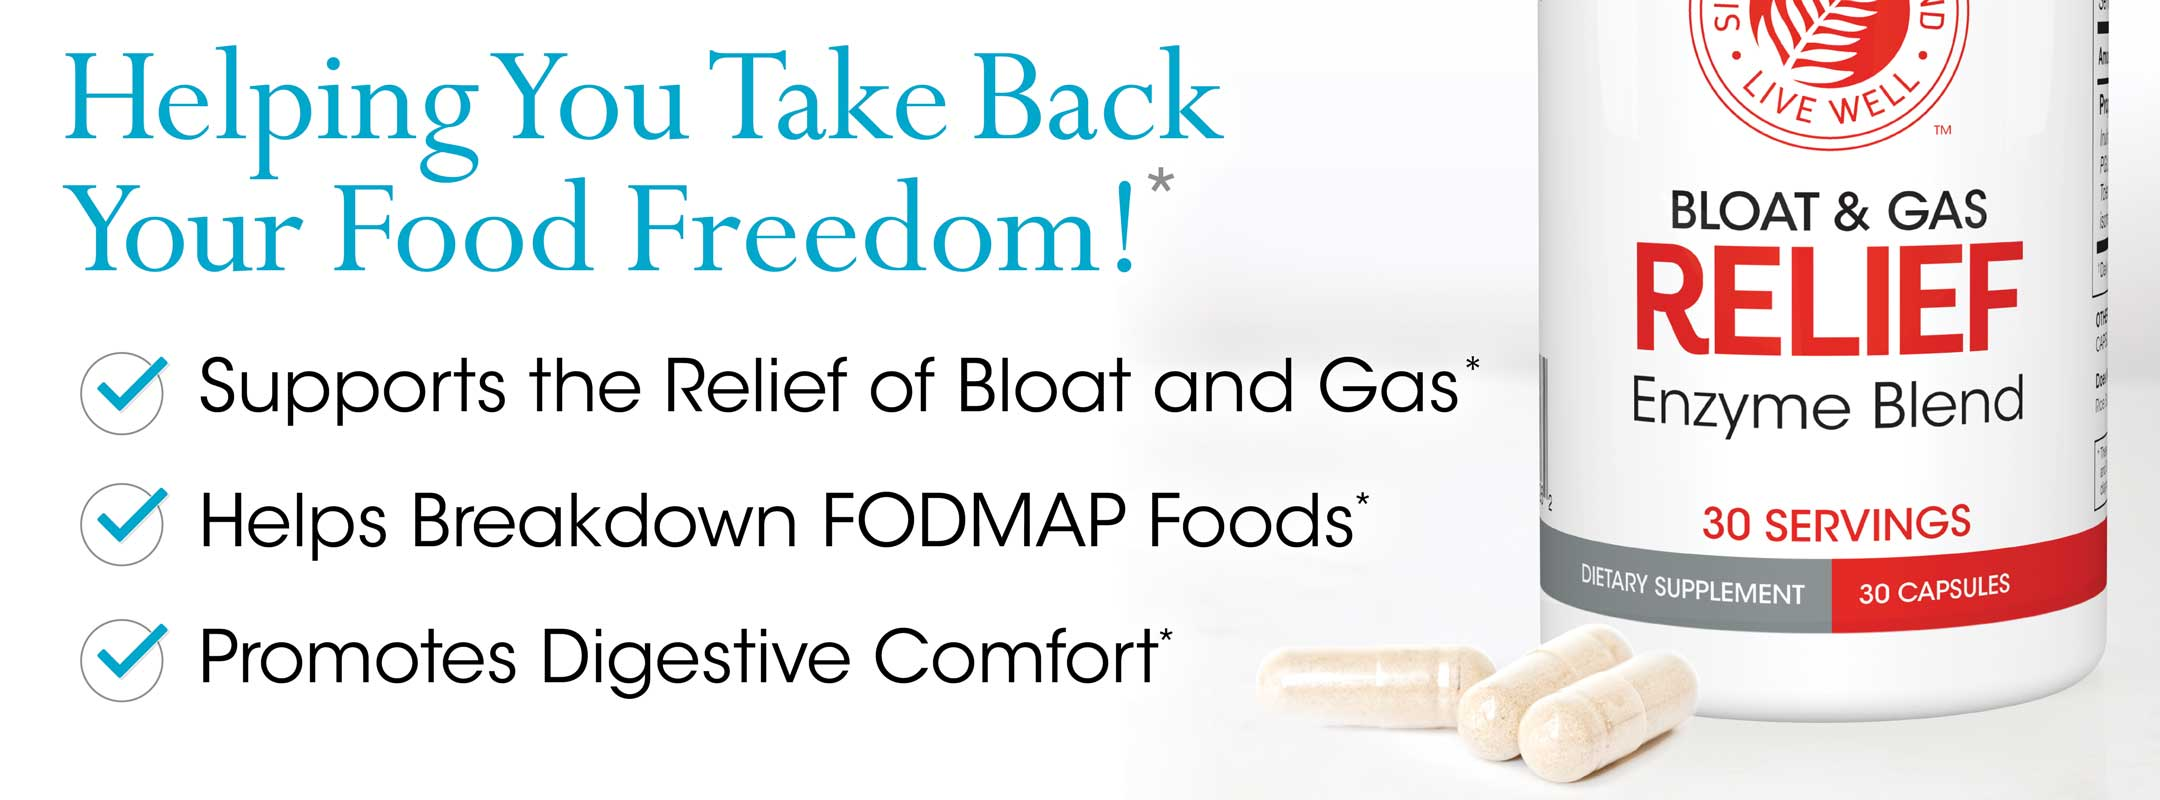 Gas & Bloat Relief - Helping You Take Back Your Food Freedom!